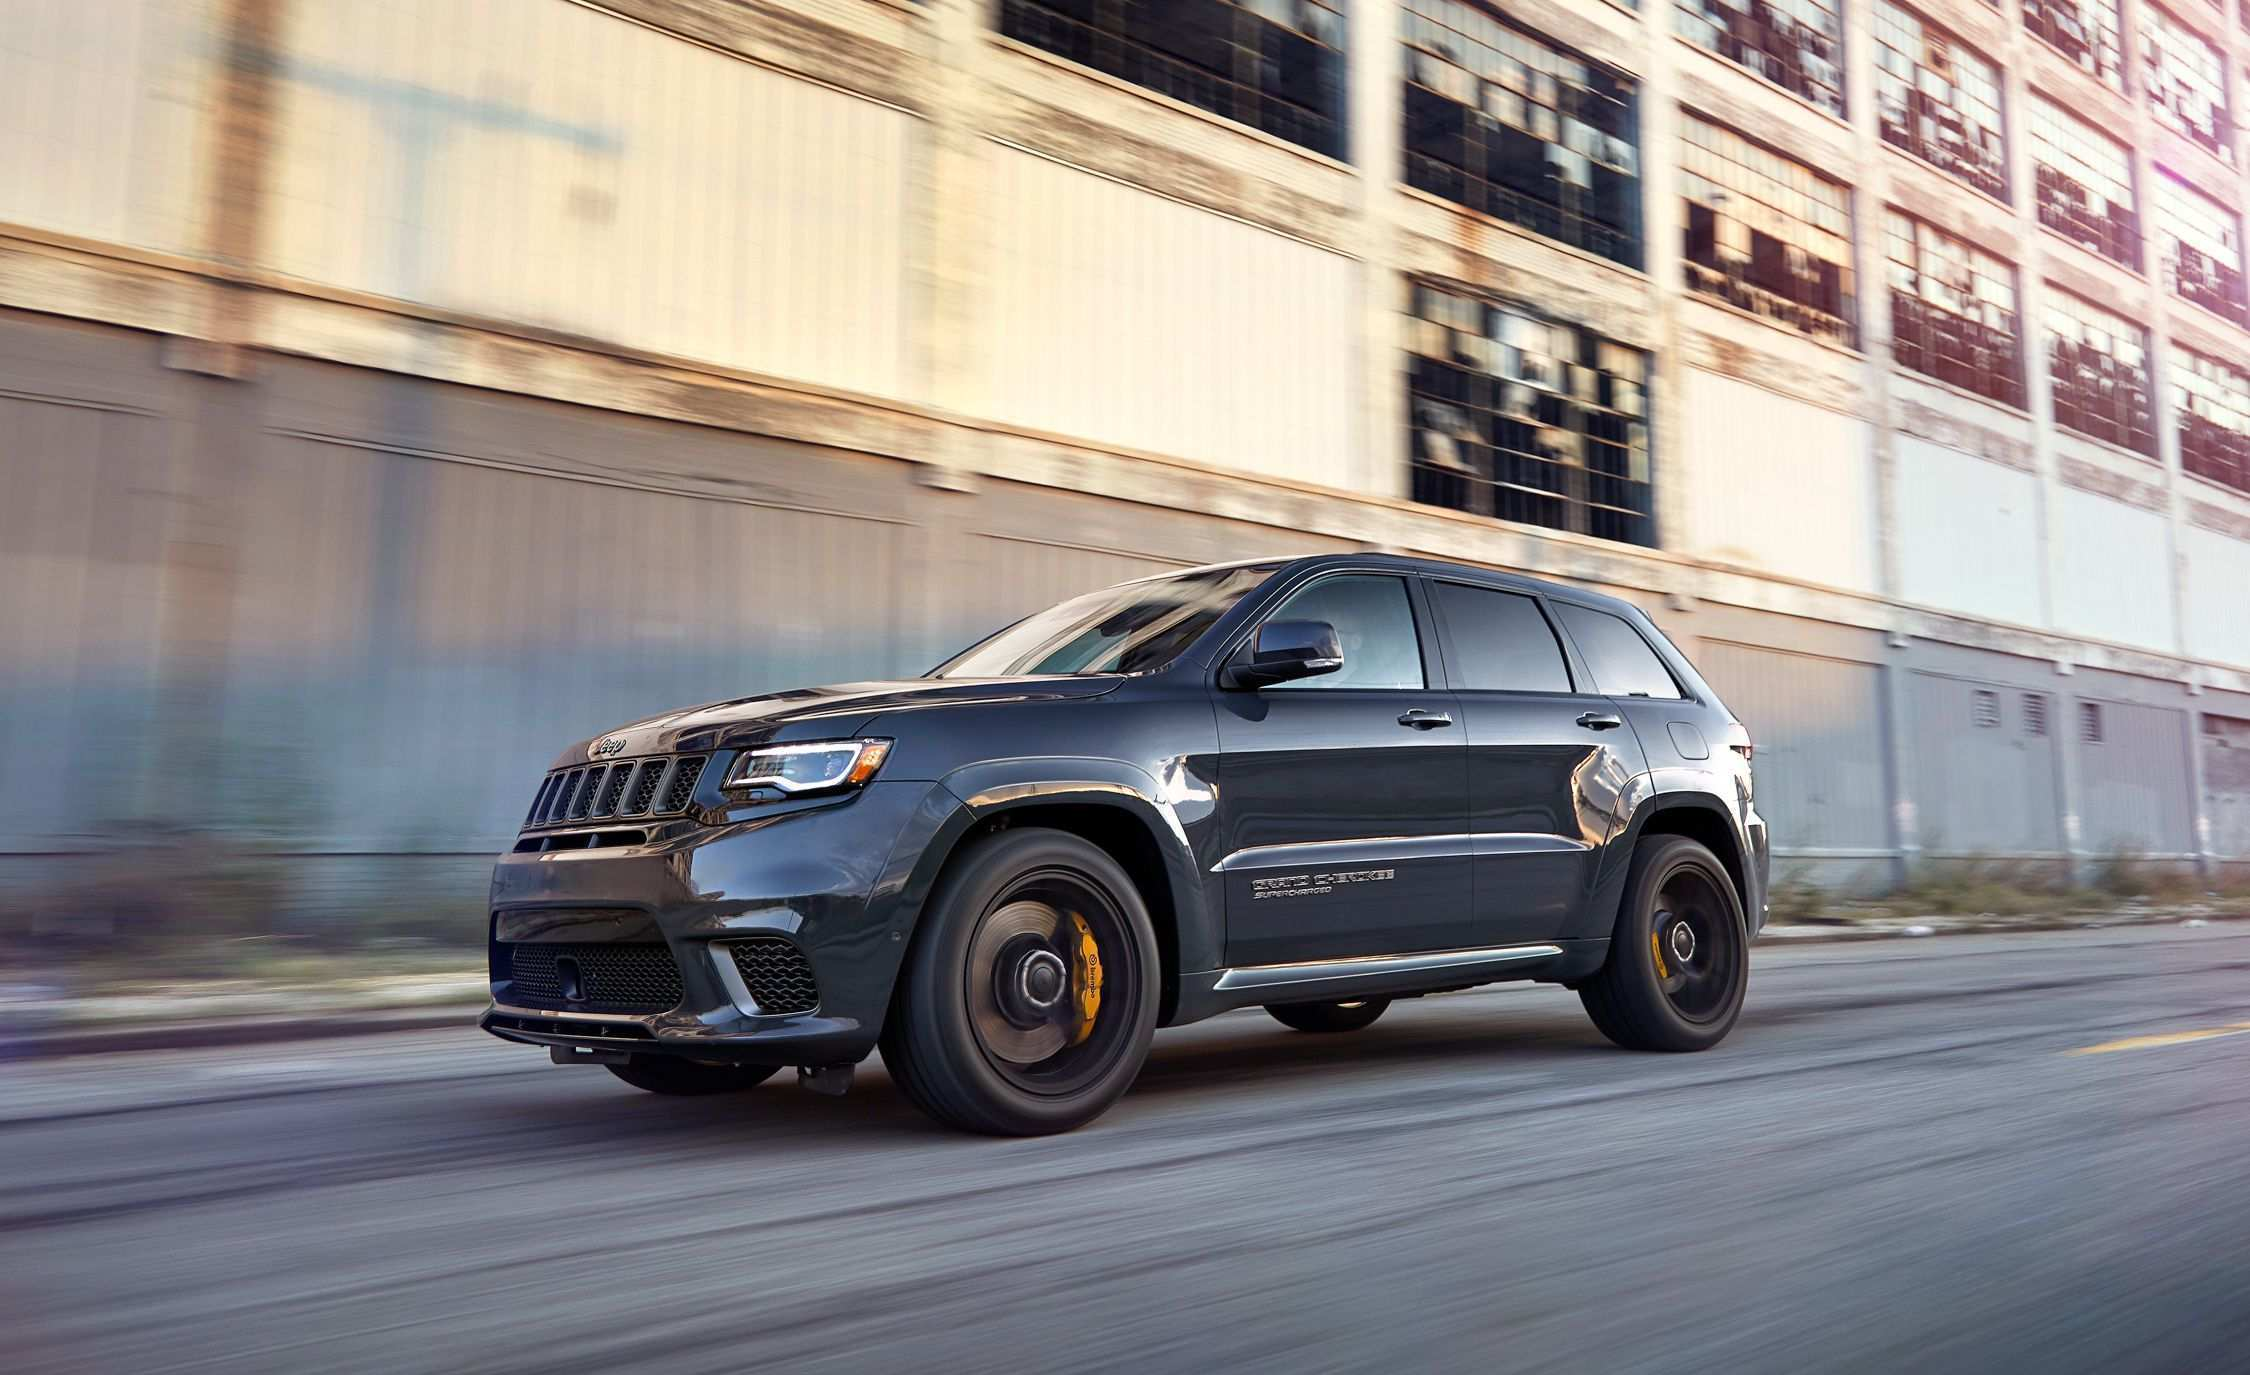 40 The Best 2019 Grand Cherokee Srt Hellcat Price Design And Review